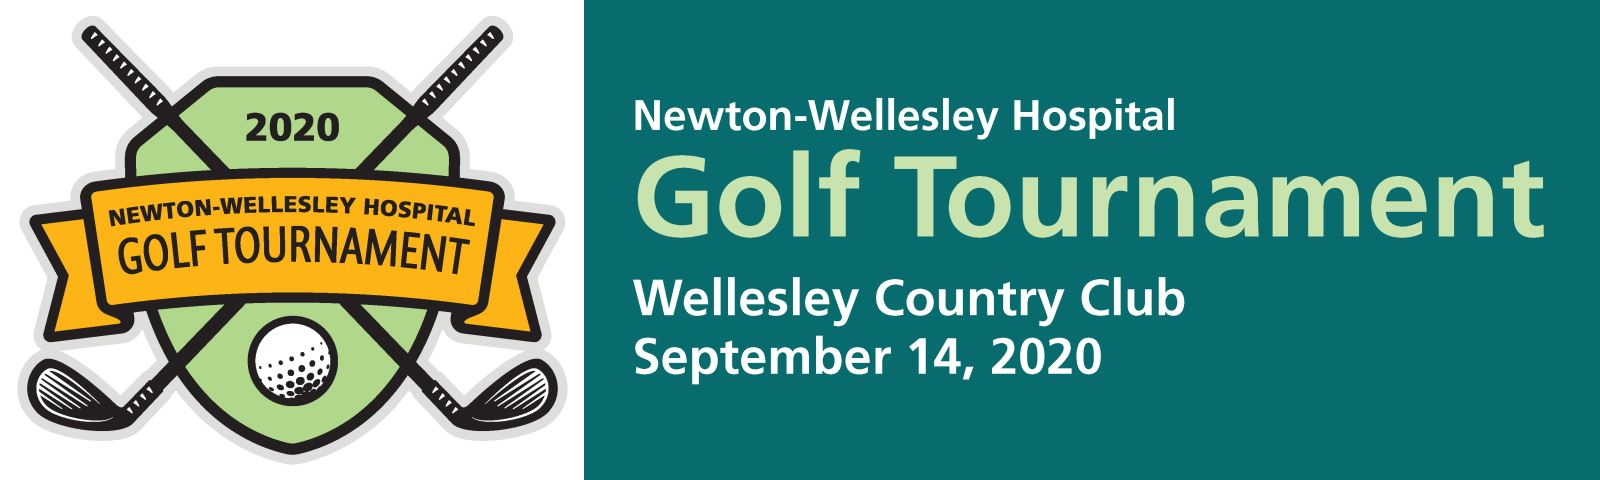 Newton-Wellesley Hospital Golf Tournament 2019